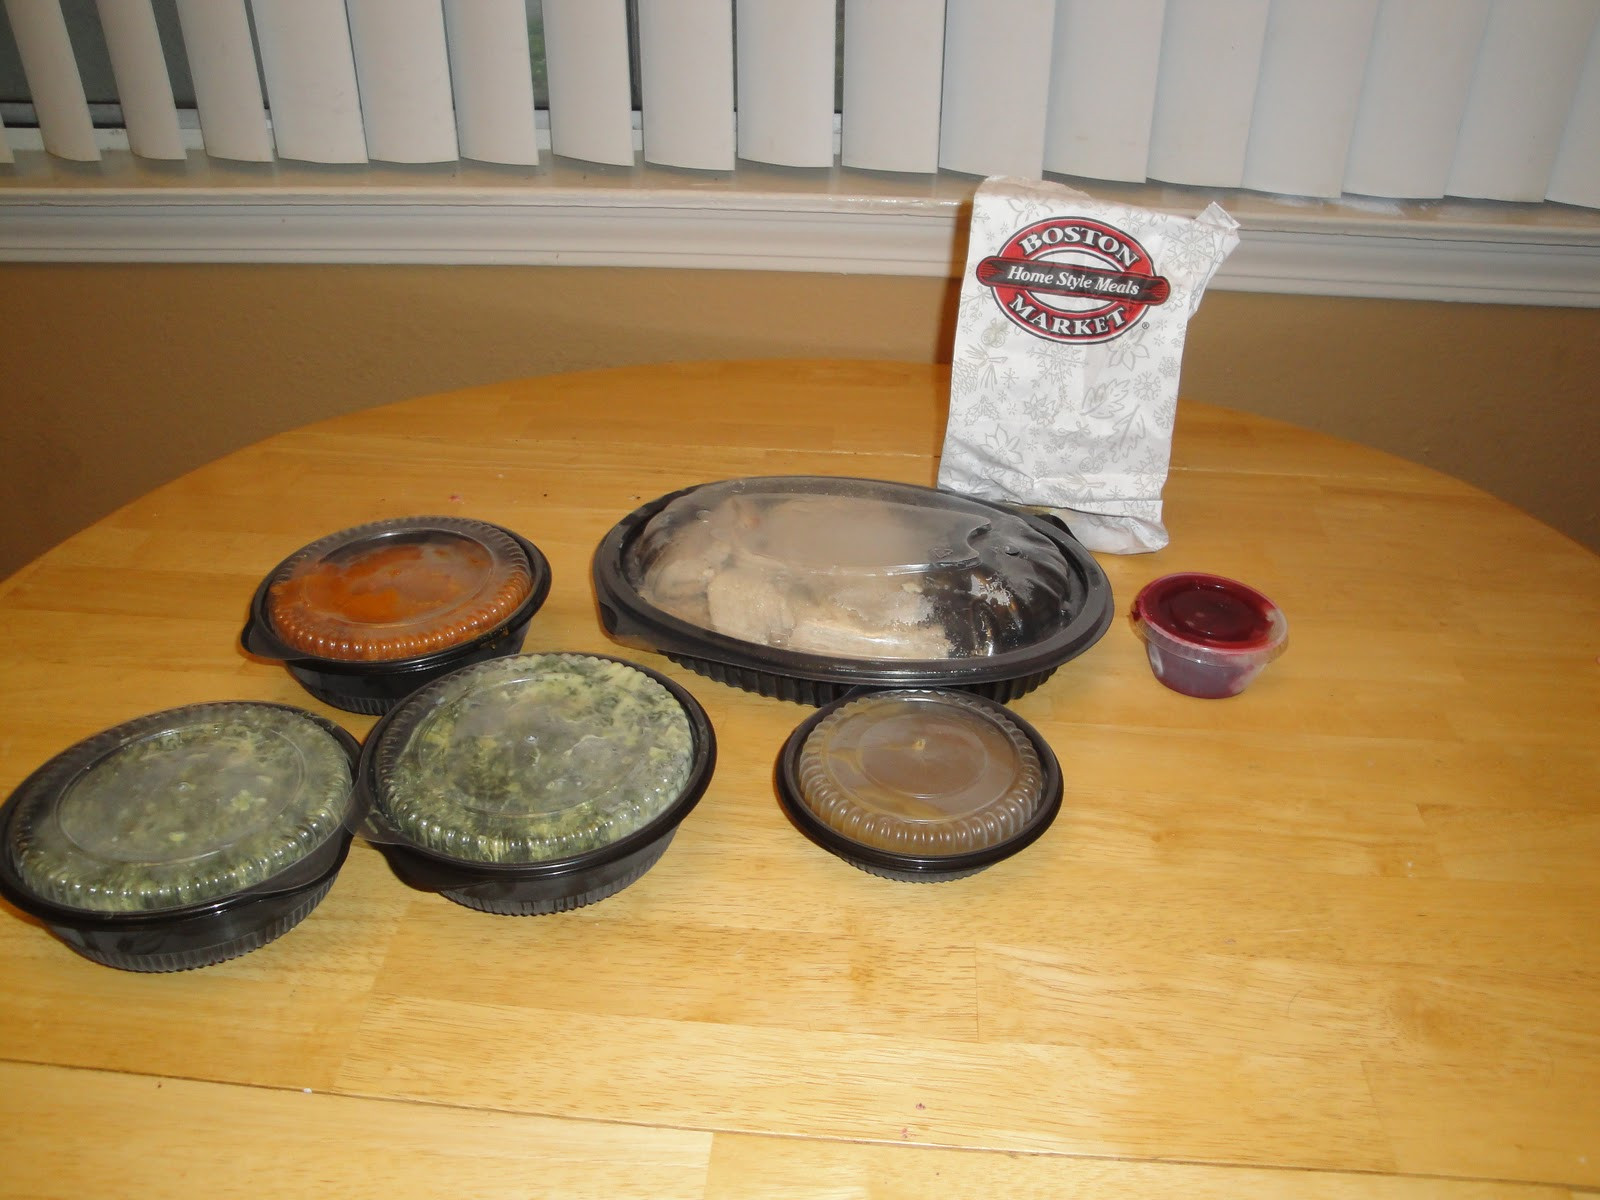 Boston Market Thanksgiving Dinners To Go  Boston Market Holiday Meals Review